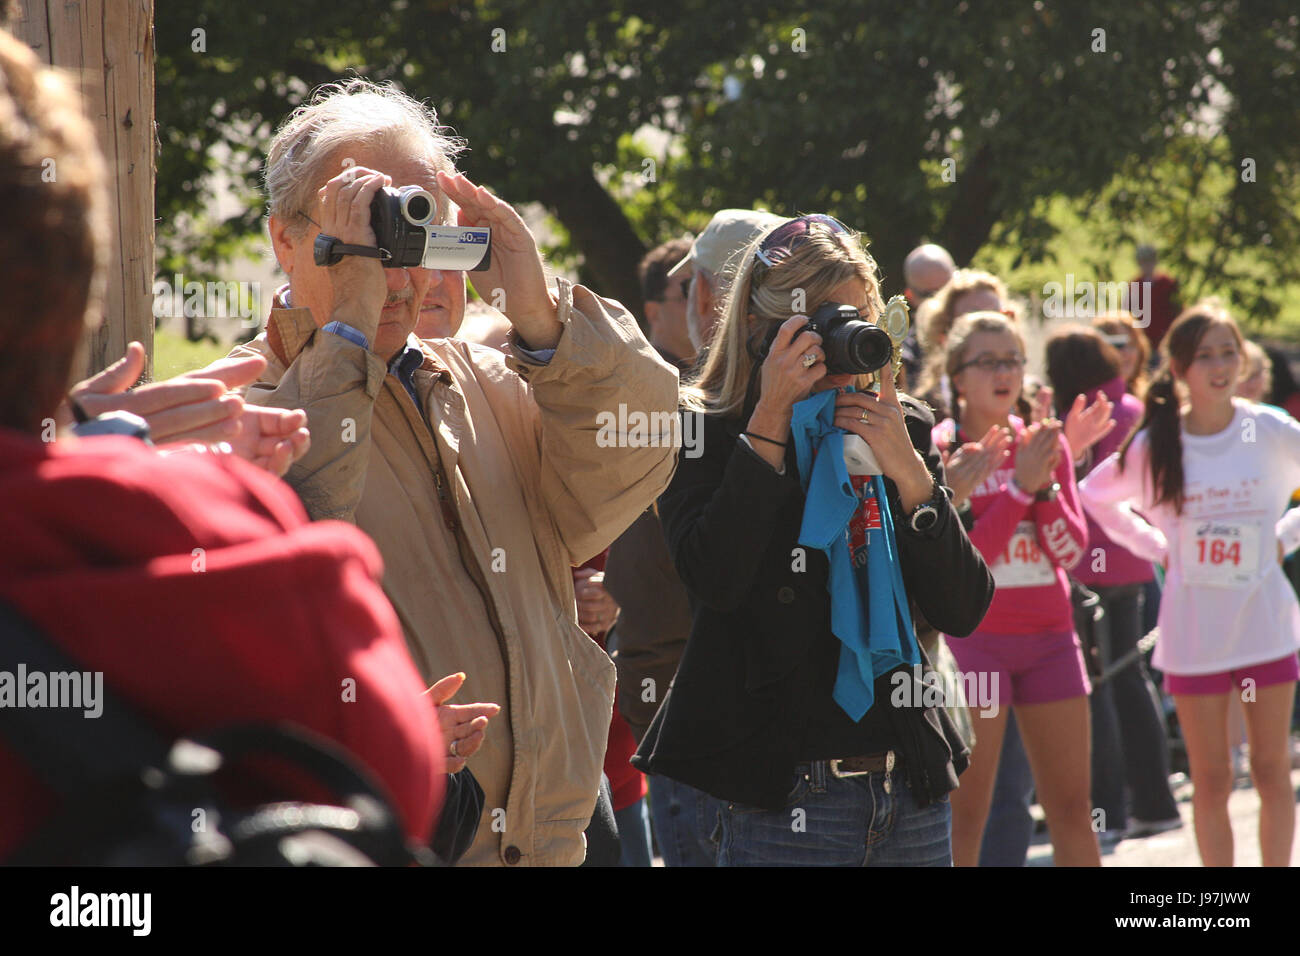 Parents taking photos and videos during sport event - Stock Image